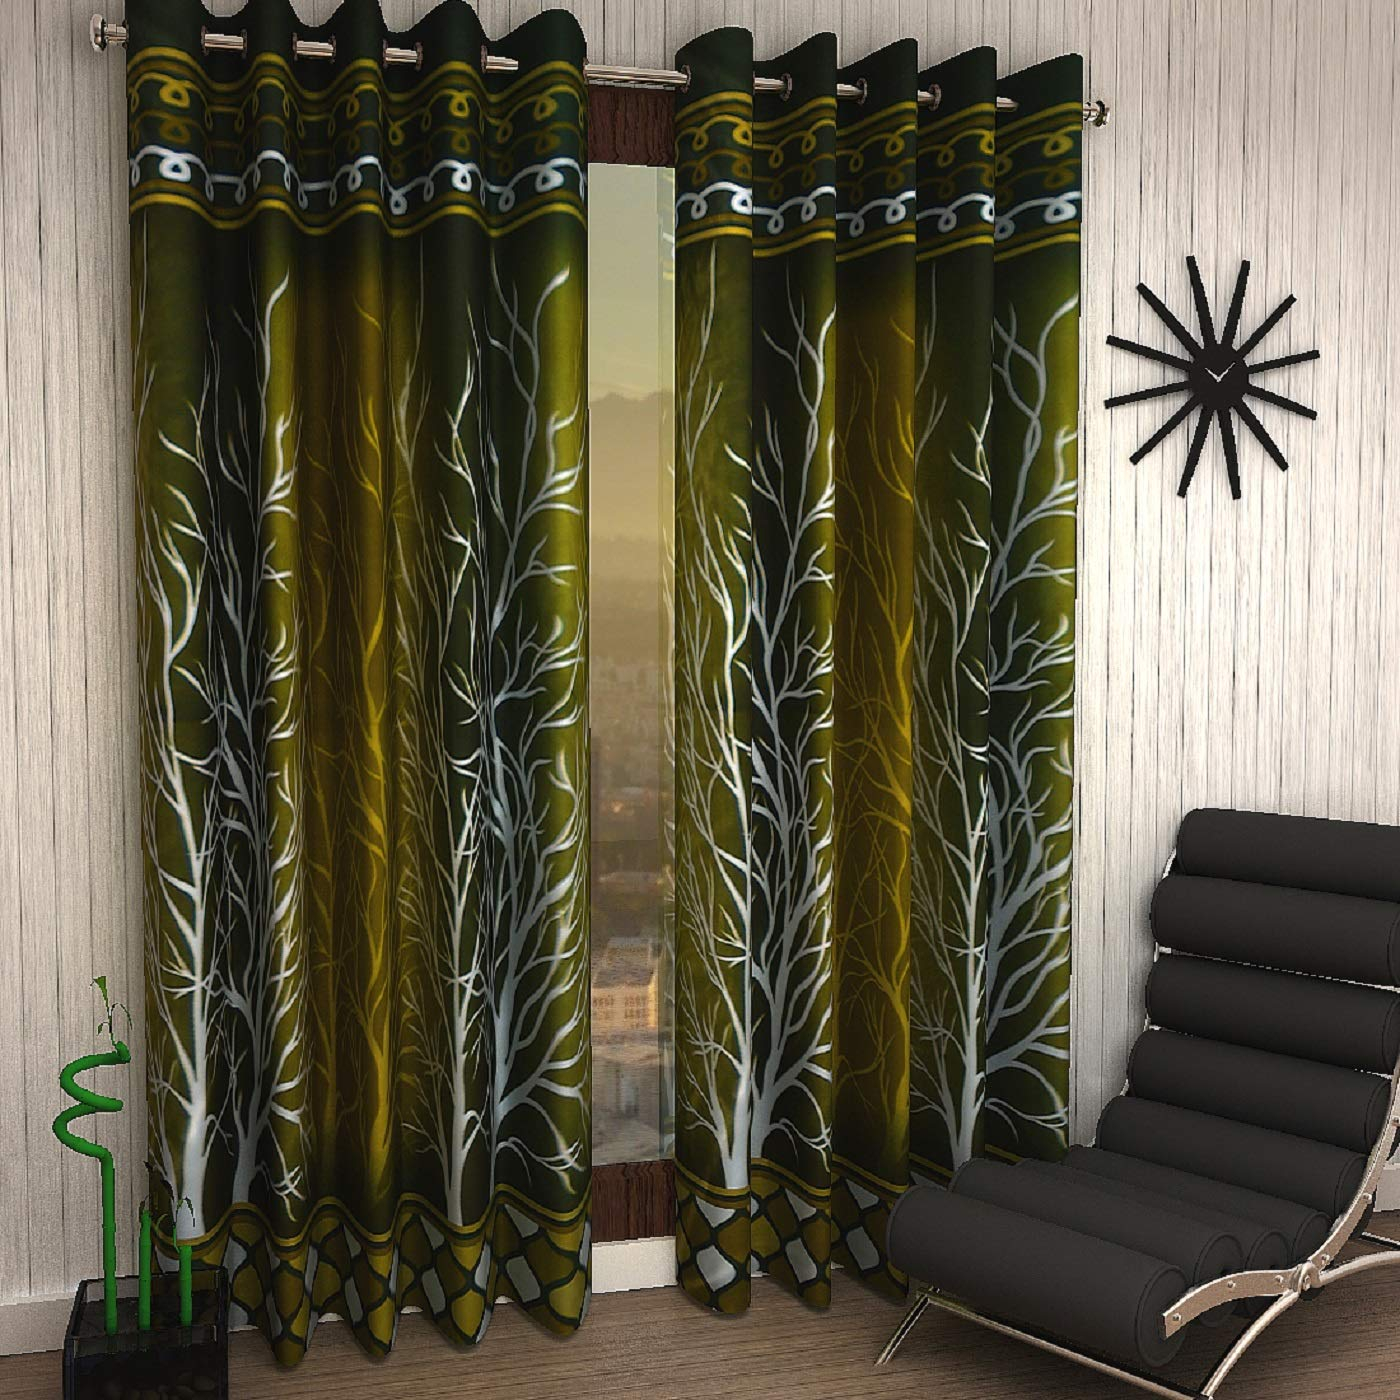 Home Sizzler 2 Piece Eyelet Polyester Door Curtain Set - 7ft, Green (B06WP1VXQQ) Amazon Price History, Amazon Price Tracker